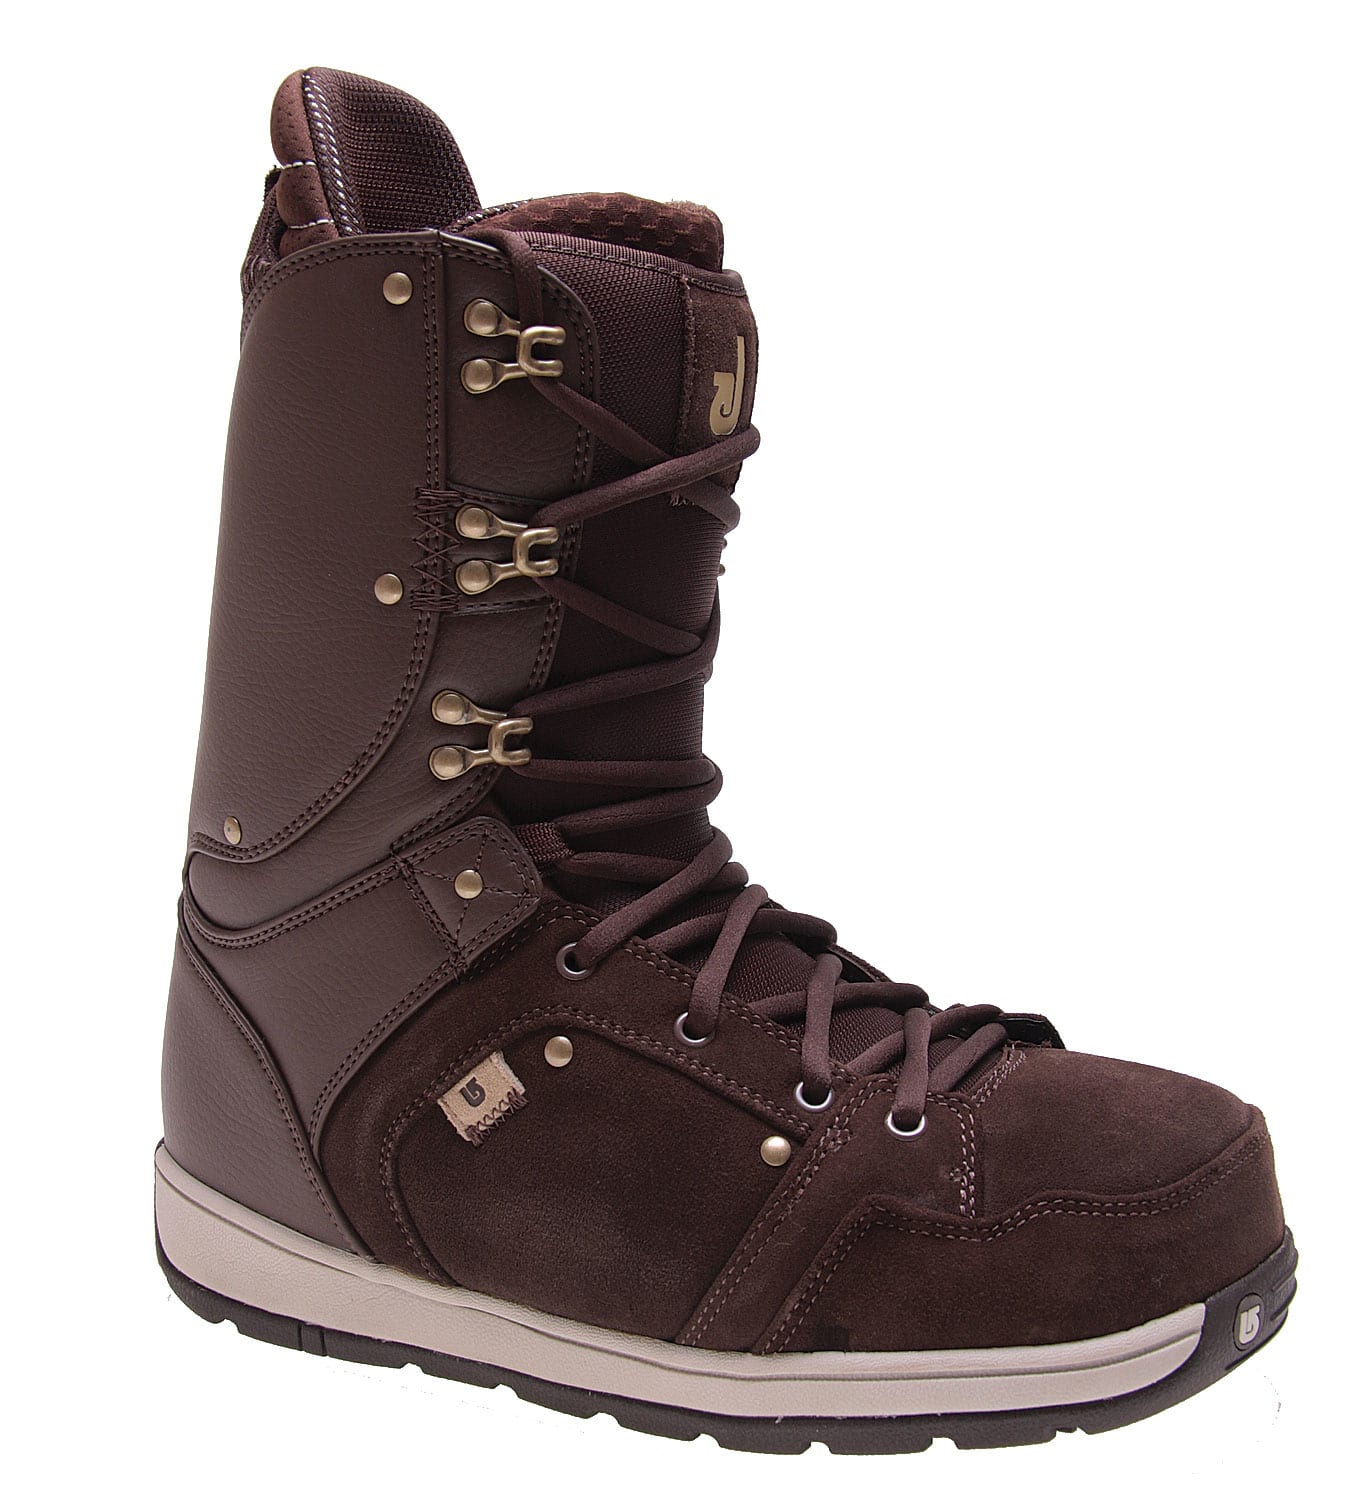 Shop for Burton Jeremy Jones Snowboard Boots Brown - Kid's